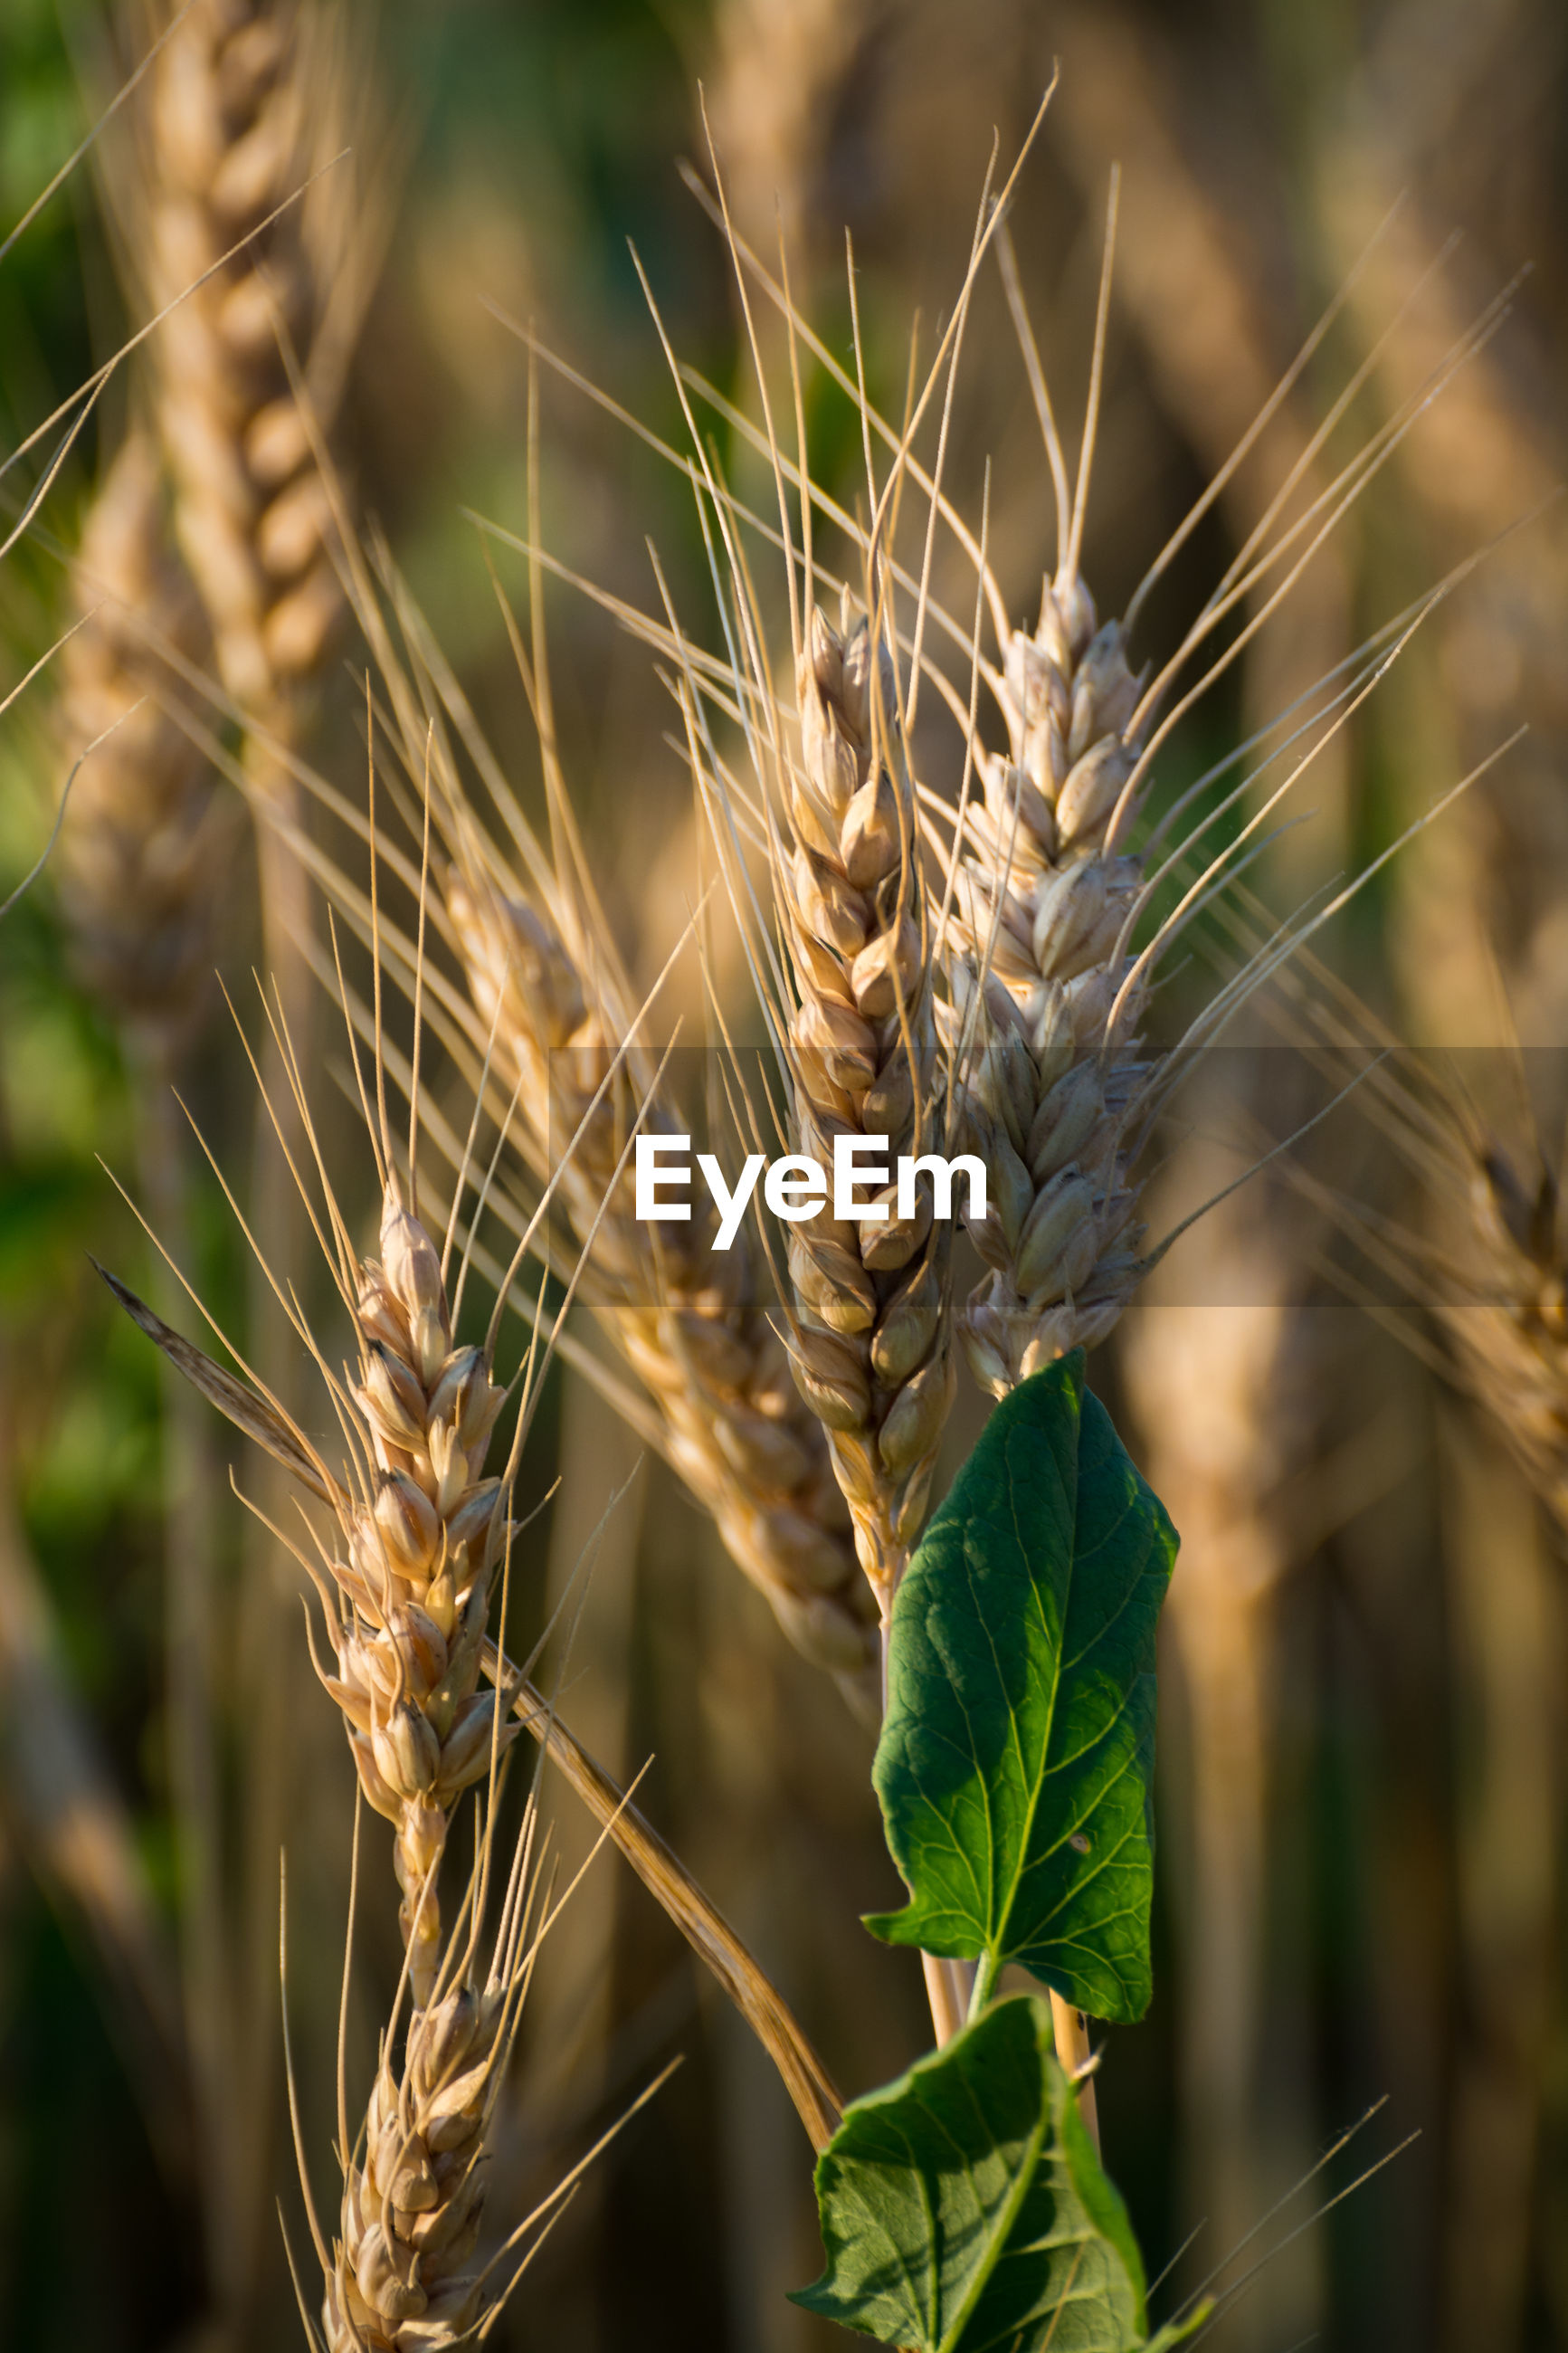 Close-up of crops against blurred background